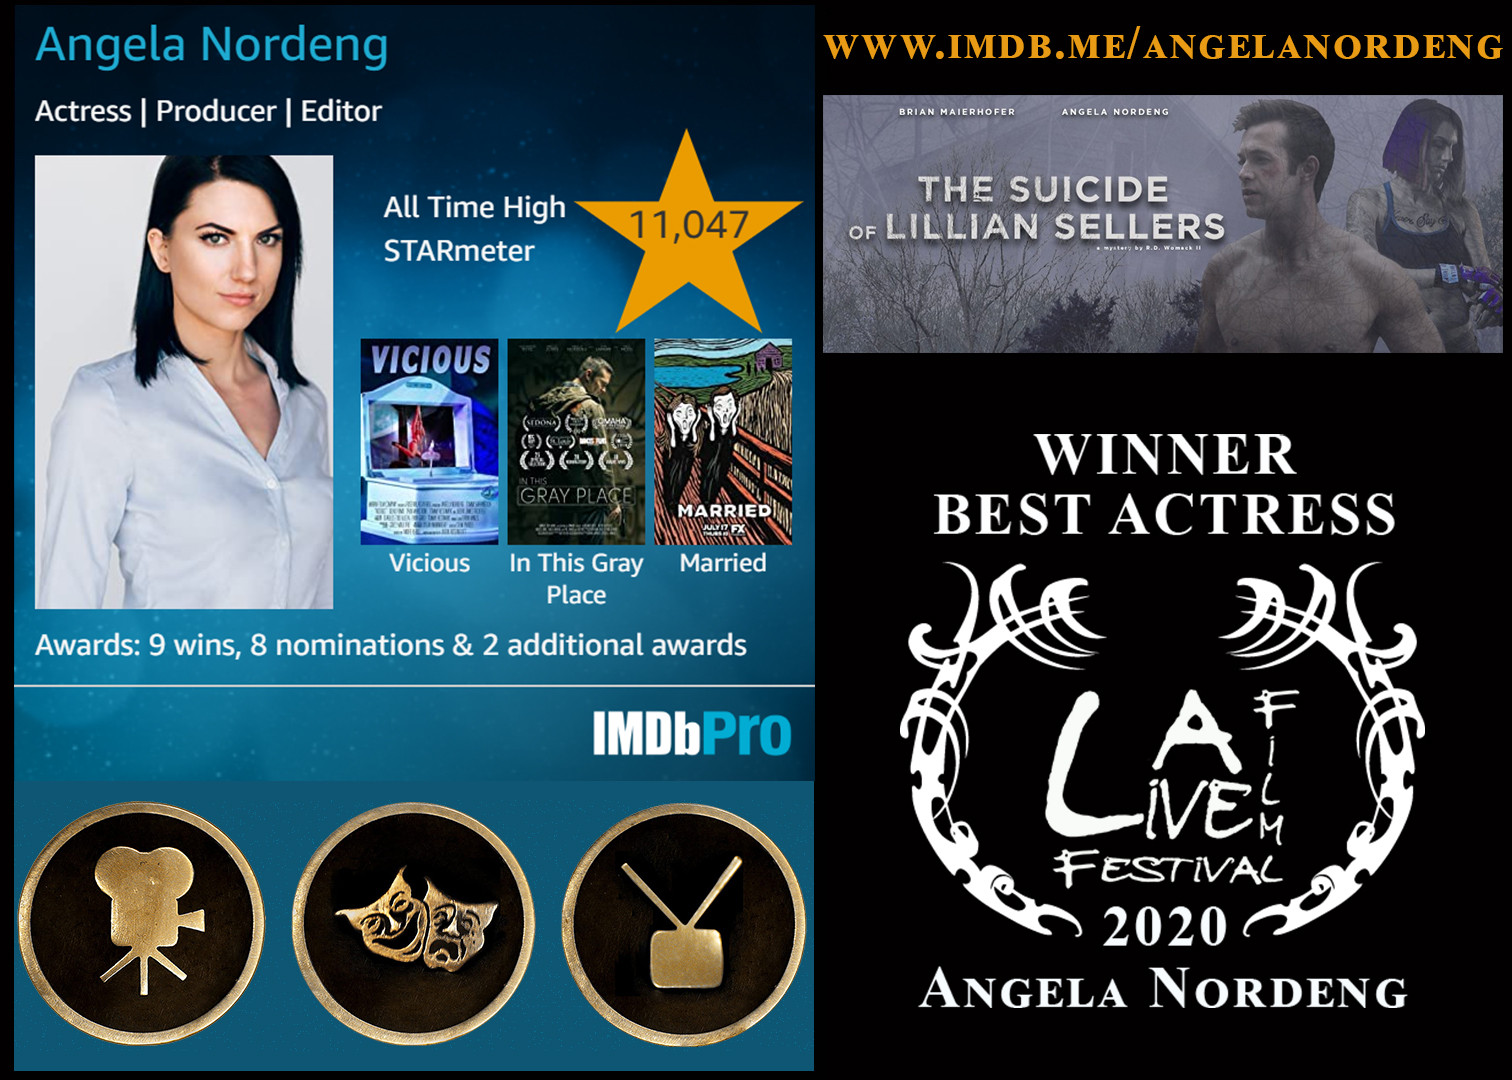 Angela Nordeng best actress